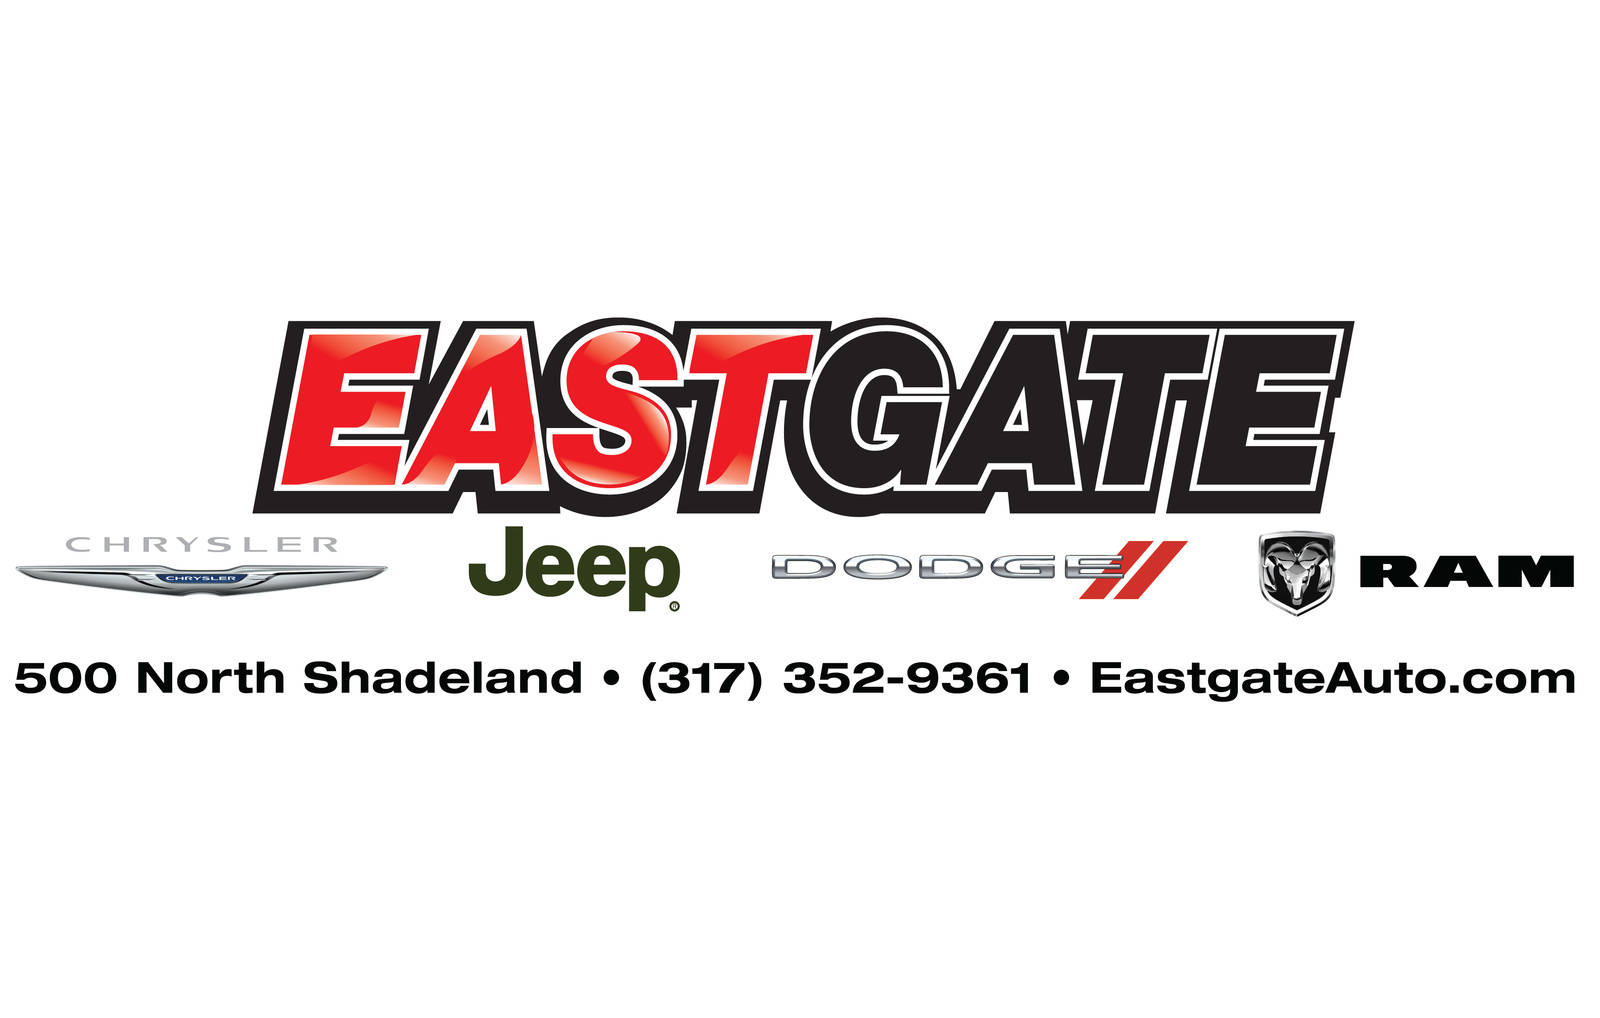 Eastgate Chrysler Jeep Dodge Ram - Indianapolis, IN: Read Consumer